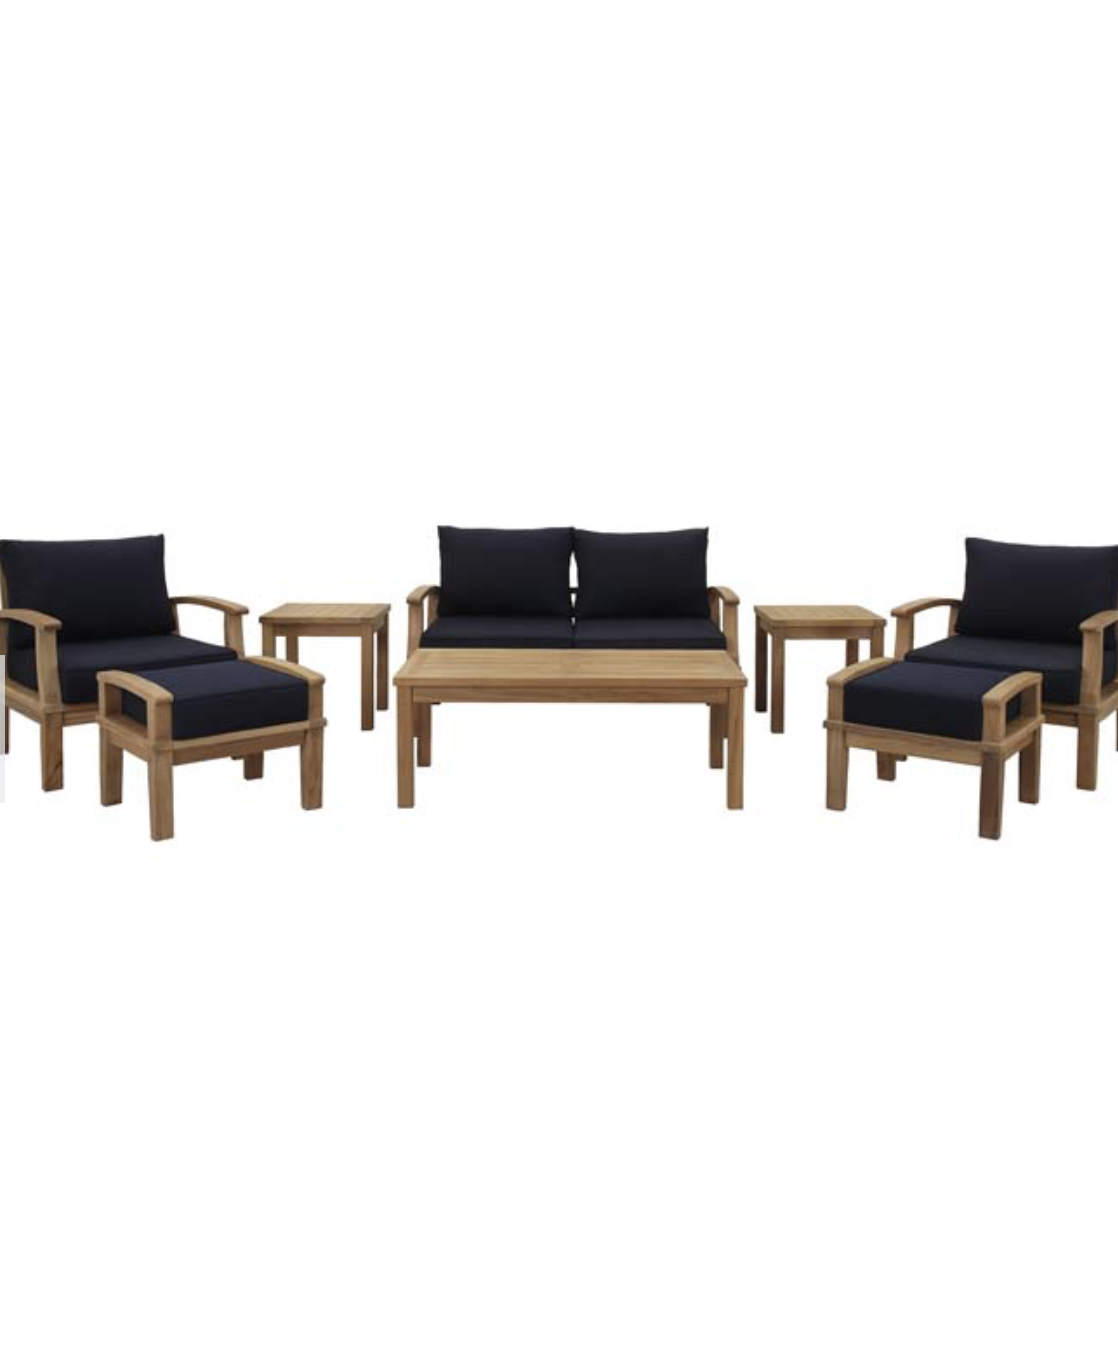 8 Piece Teak Patio Set In Navy